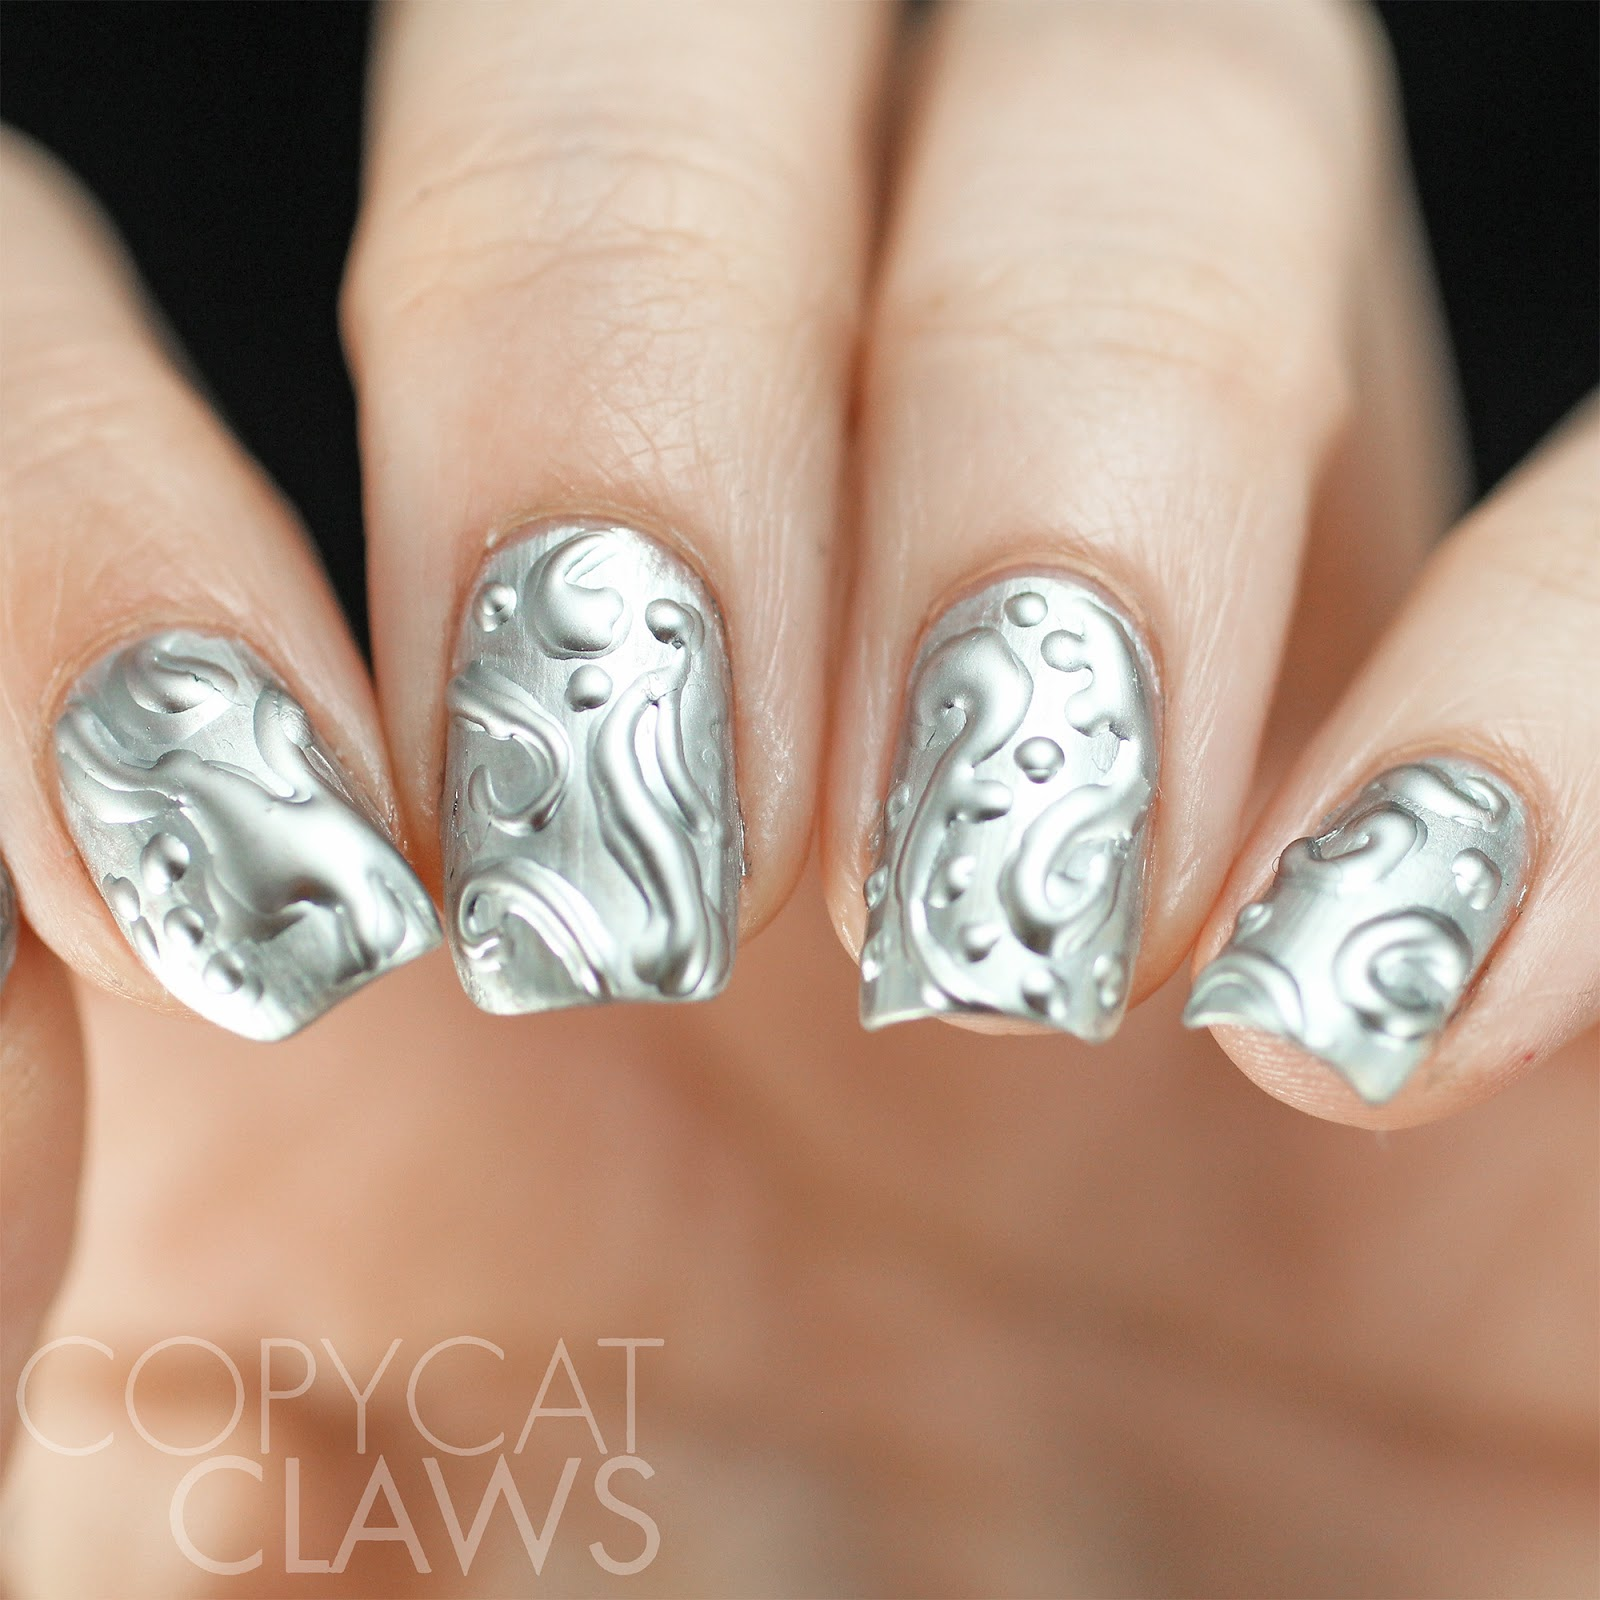 Copycat Claws: The Digit-al Dozen does New & Improved ...